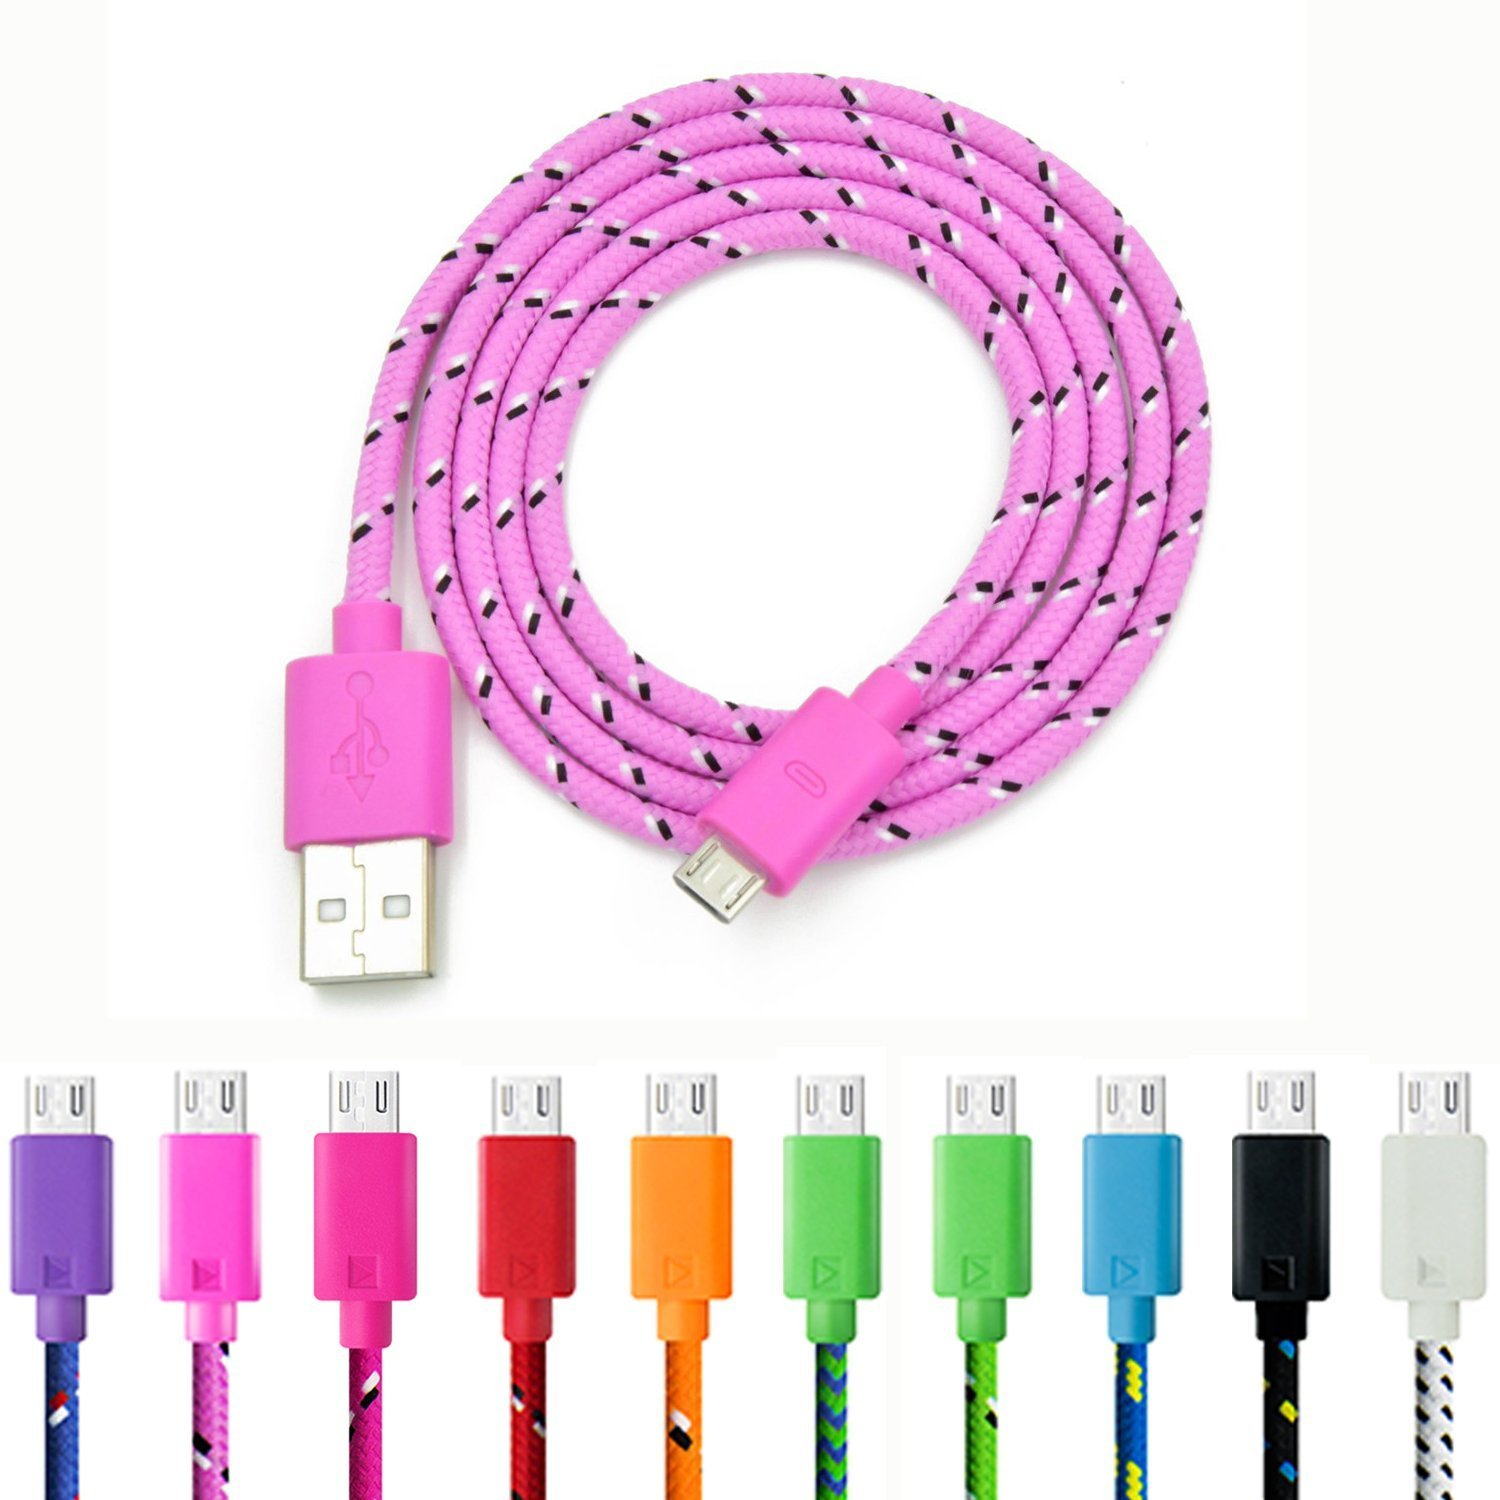 Micro USB Charger, Eversame 10-Pack Colorful 3Ft 1M Nylon Braided USB 2.0 A Male to Micro B Data Sync and Charging Cable Cord For Android Phones, Samsung Galaxy S6 Edge Plus/Note 5, HTC, LG and More